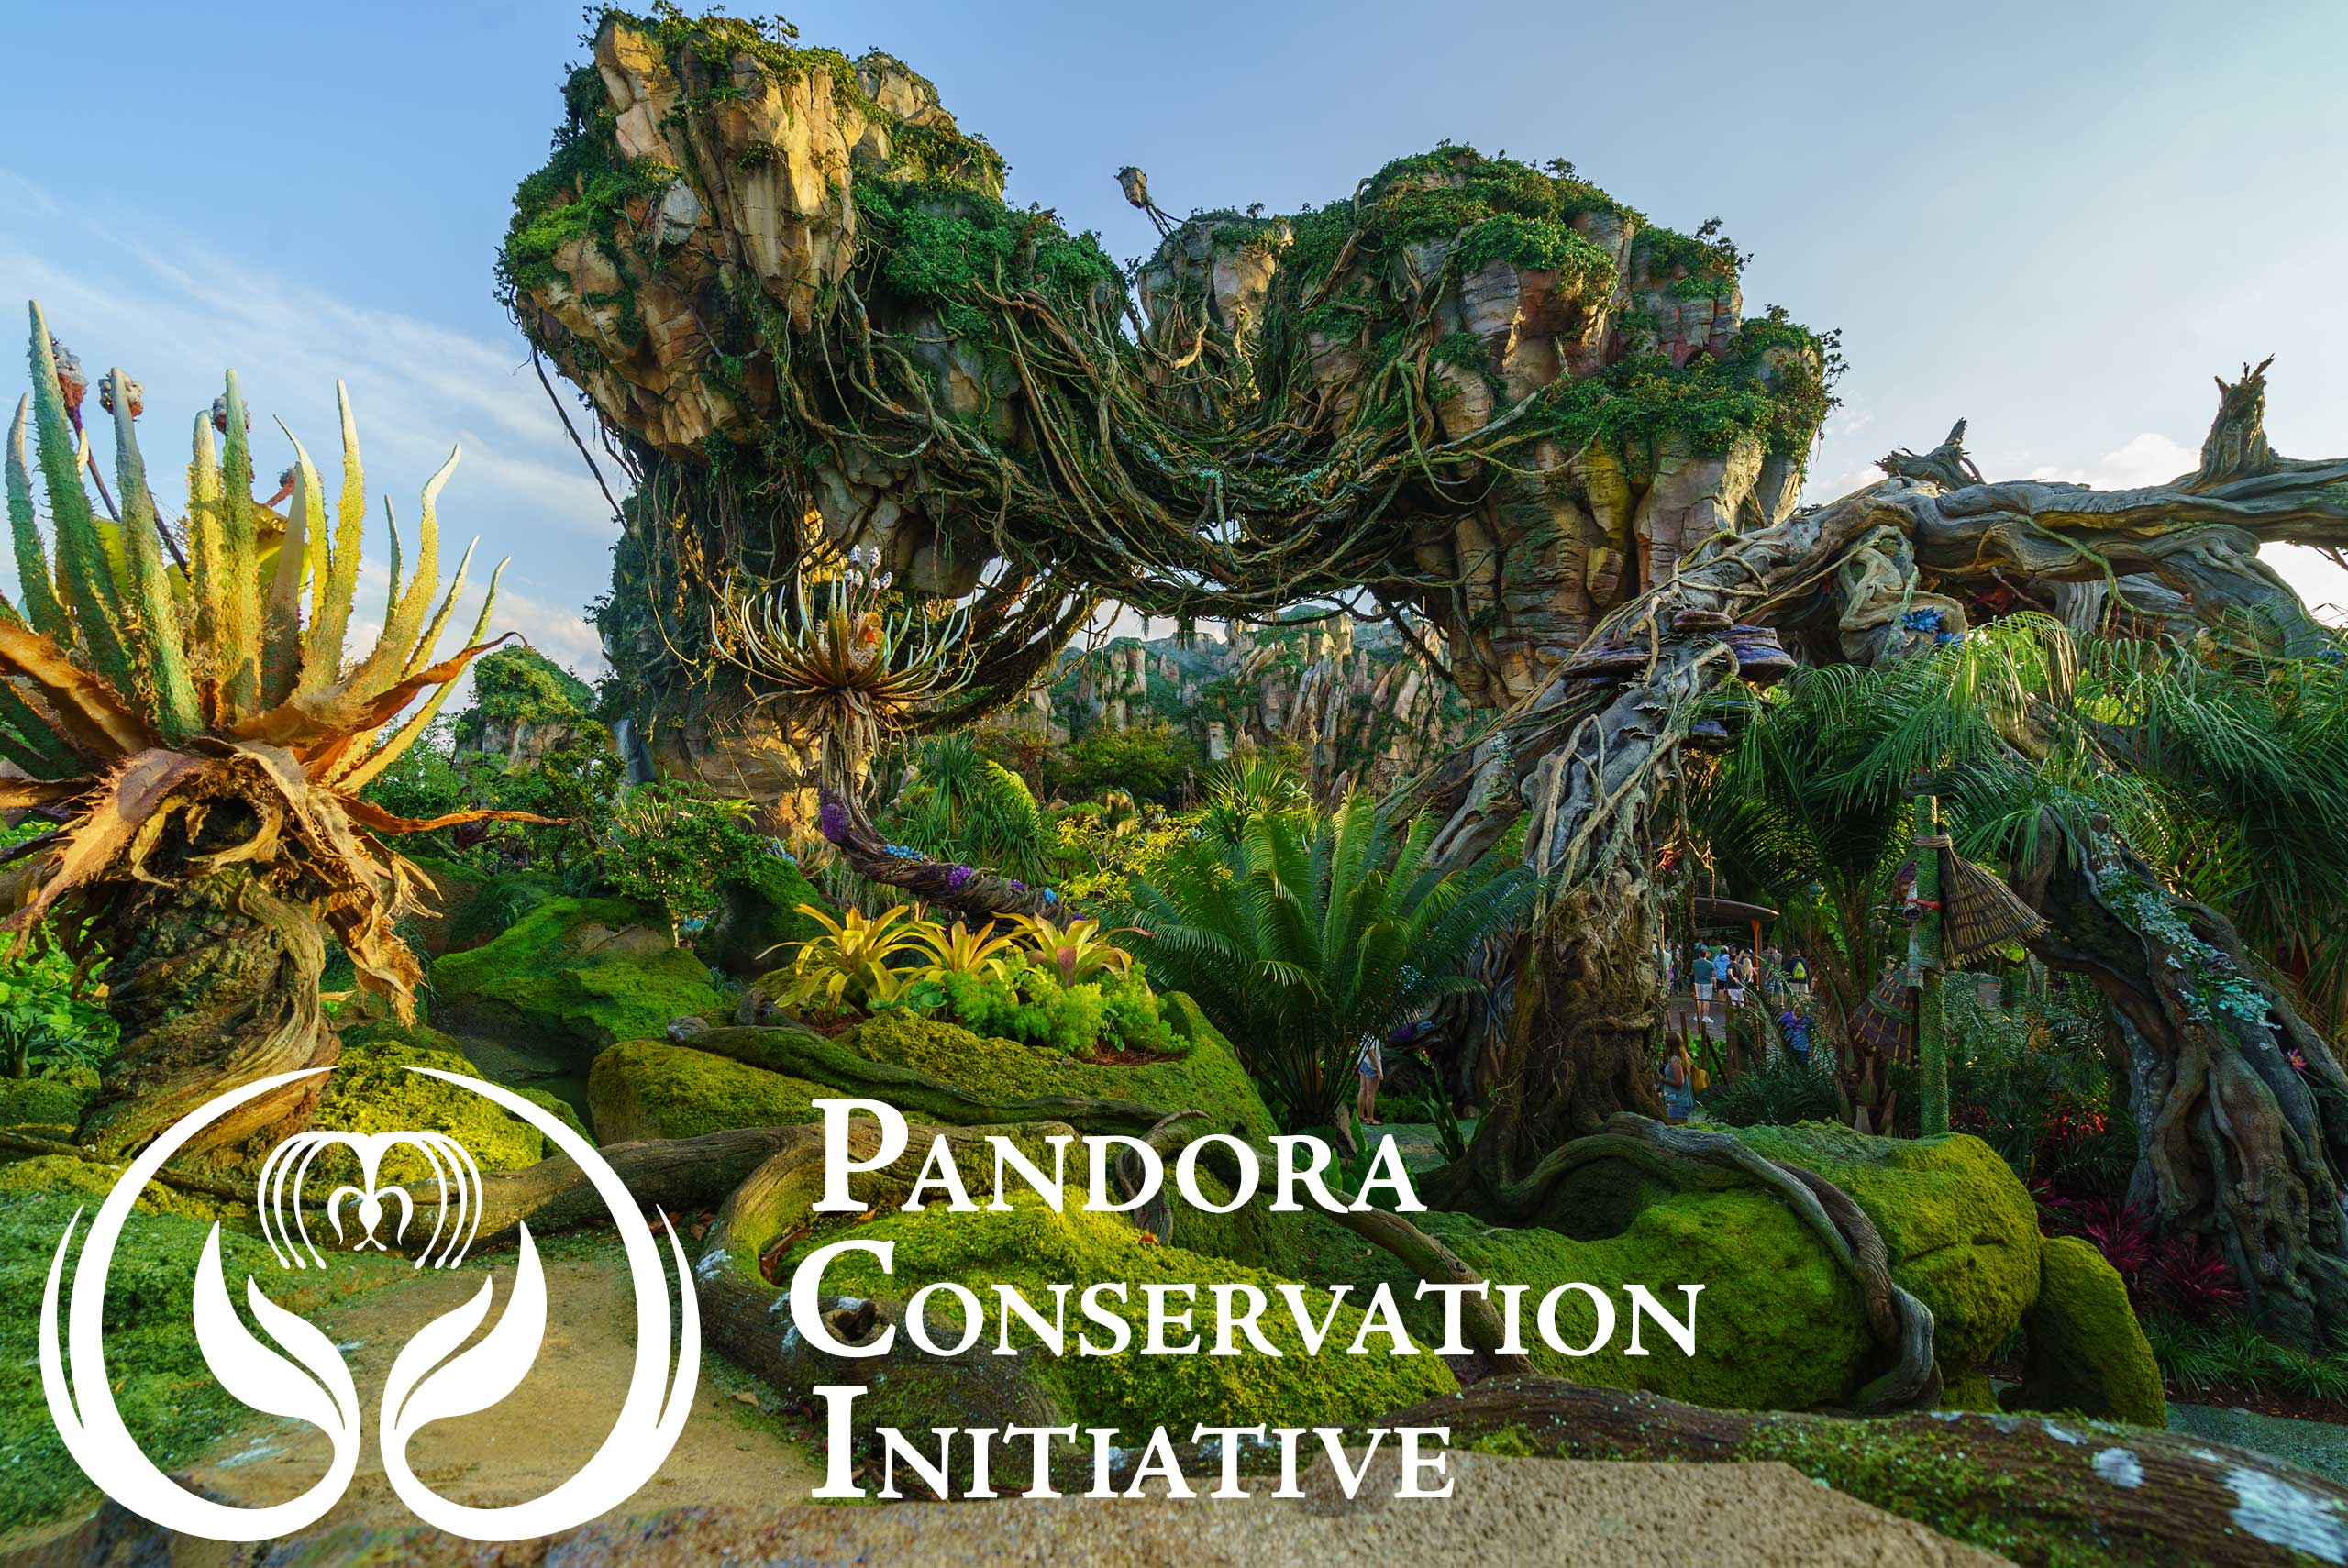 The Pandora Conservation Intiative